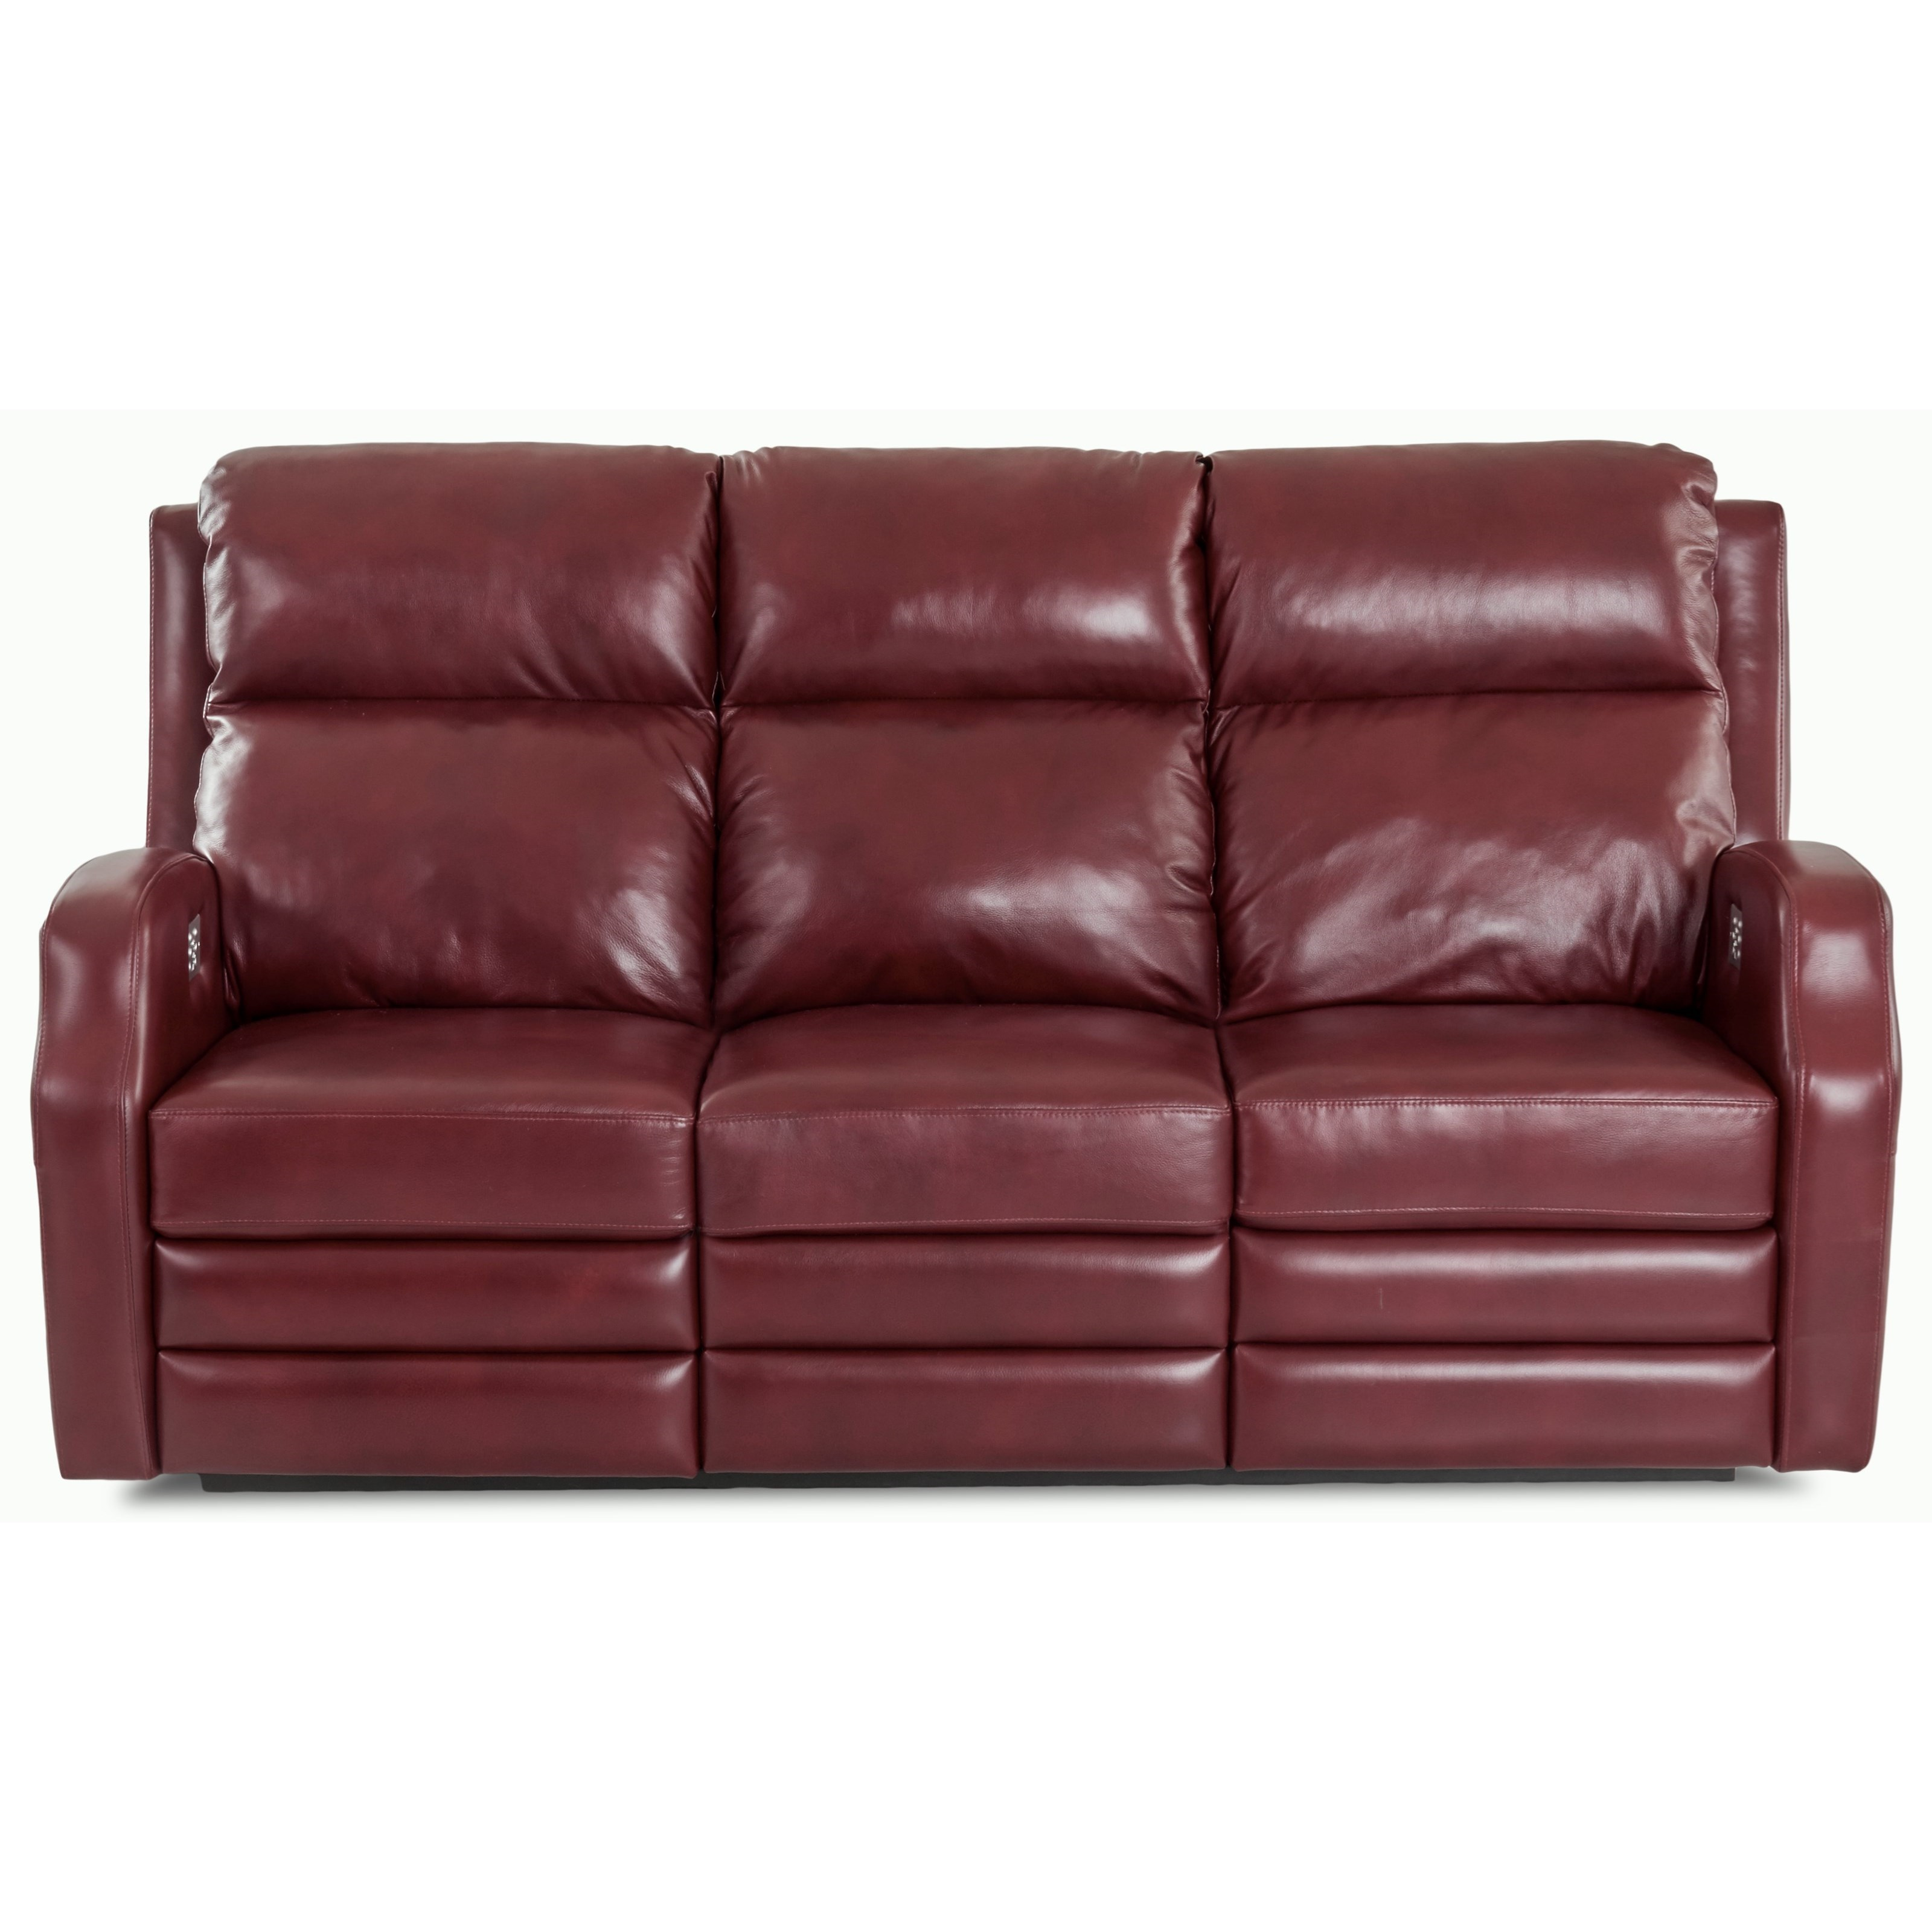 77 Inch Power Reclining Sofa with USB Charging Ports